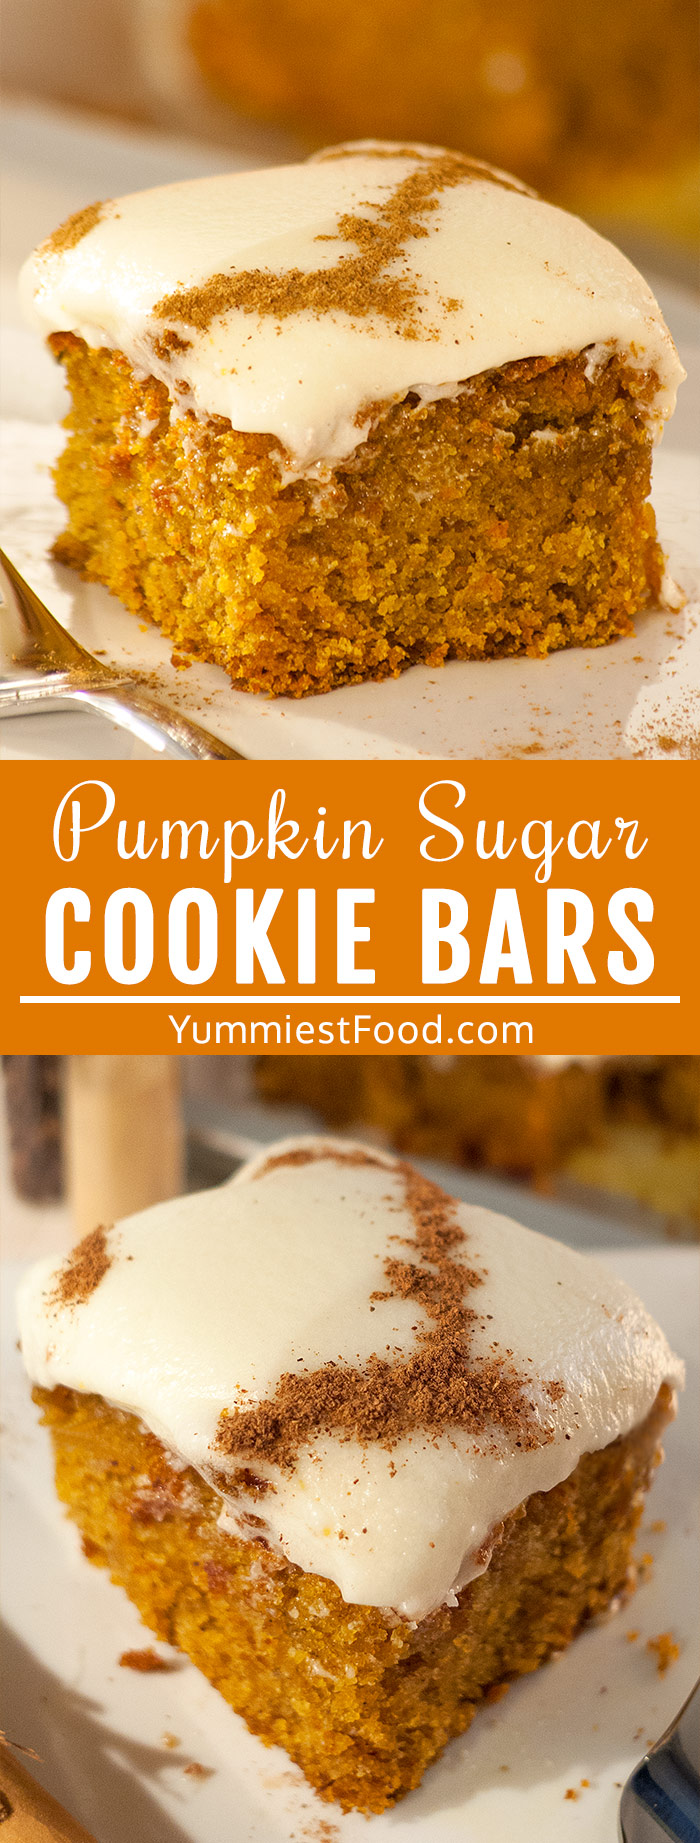 Pumpkin Sugar Cookie Bars with Cream Cheese Frosting - Made of homemade pumpkin puree and topped with cream cheese frosting